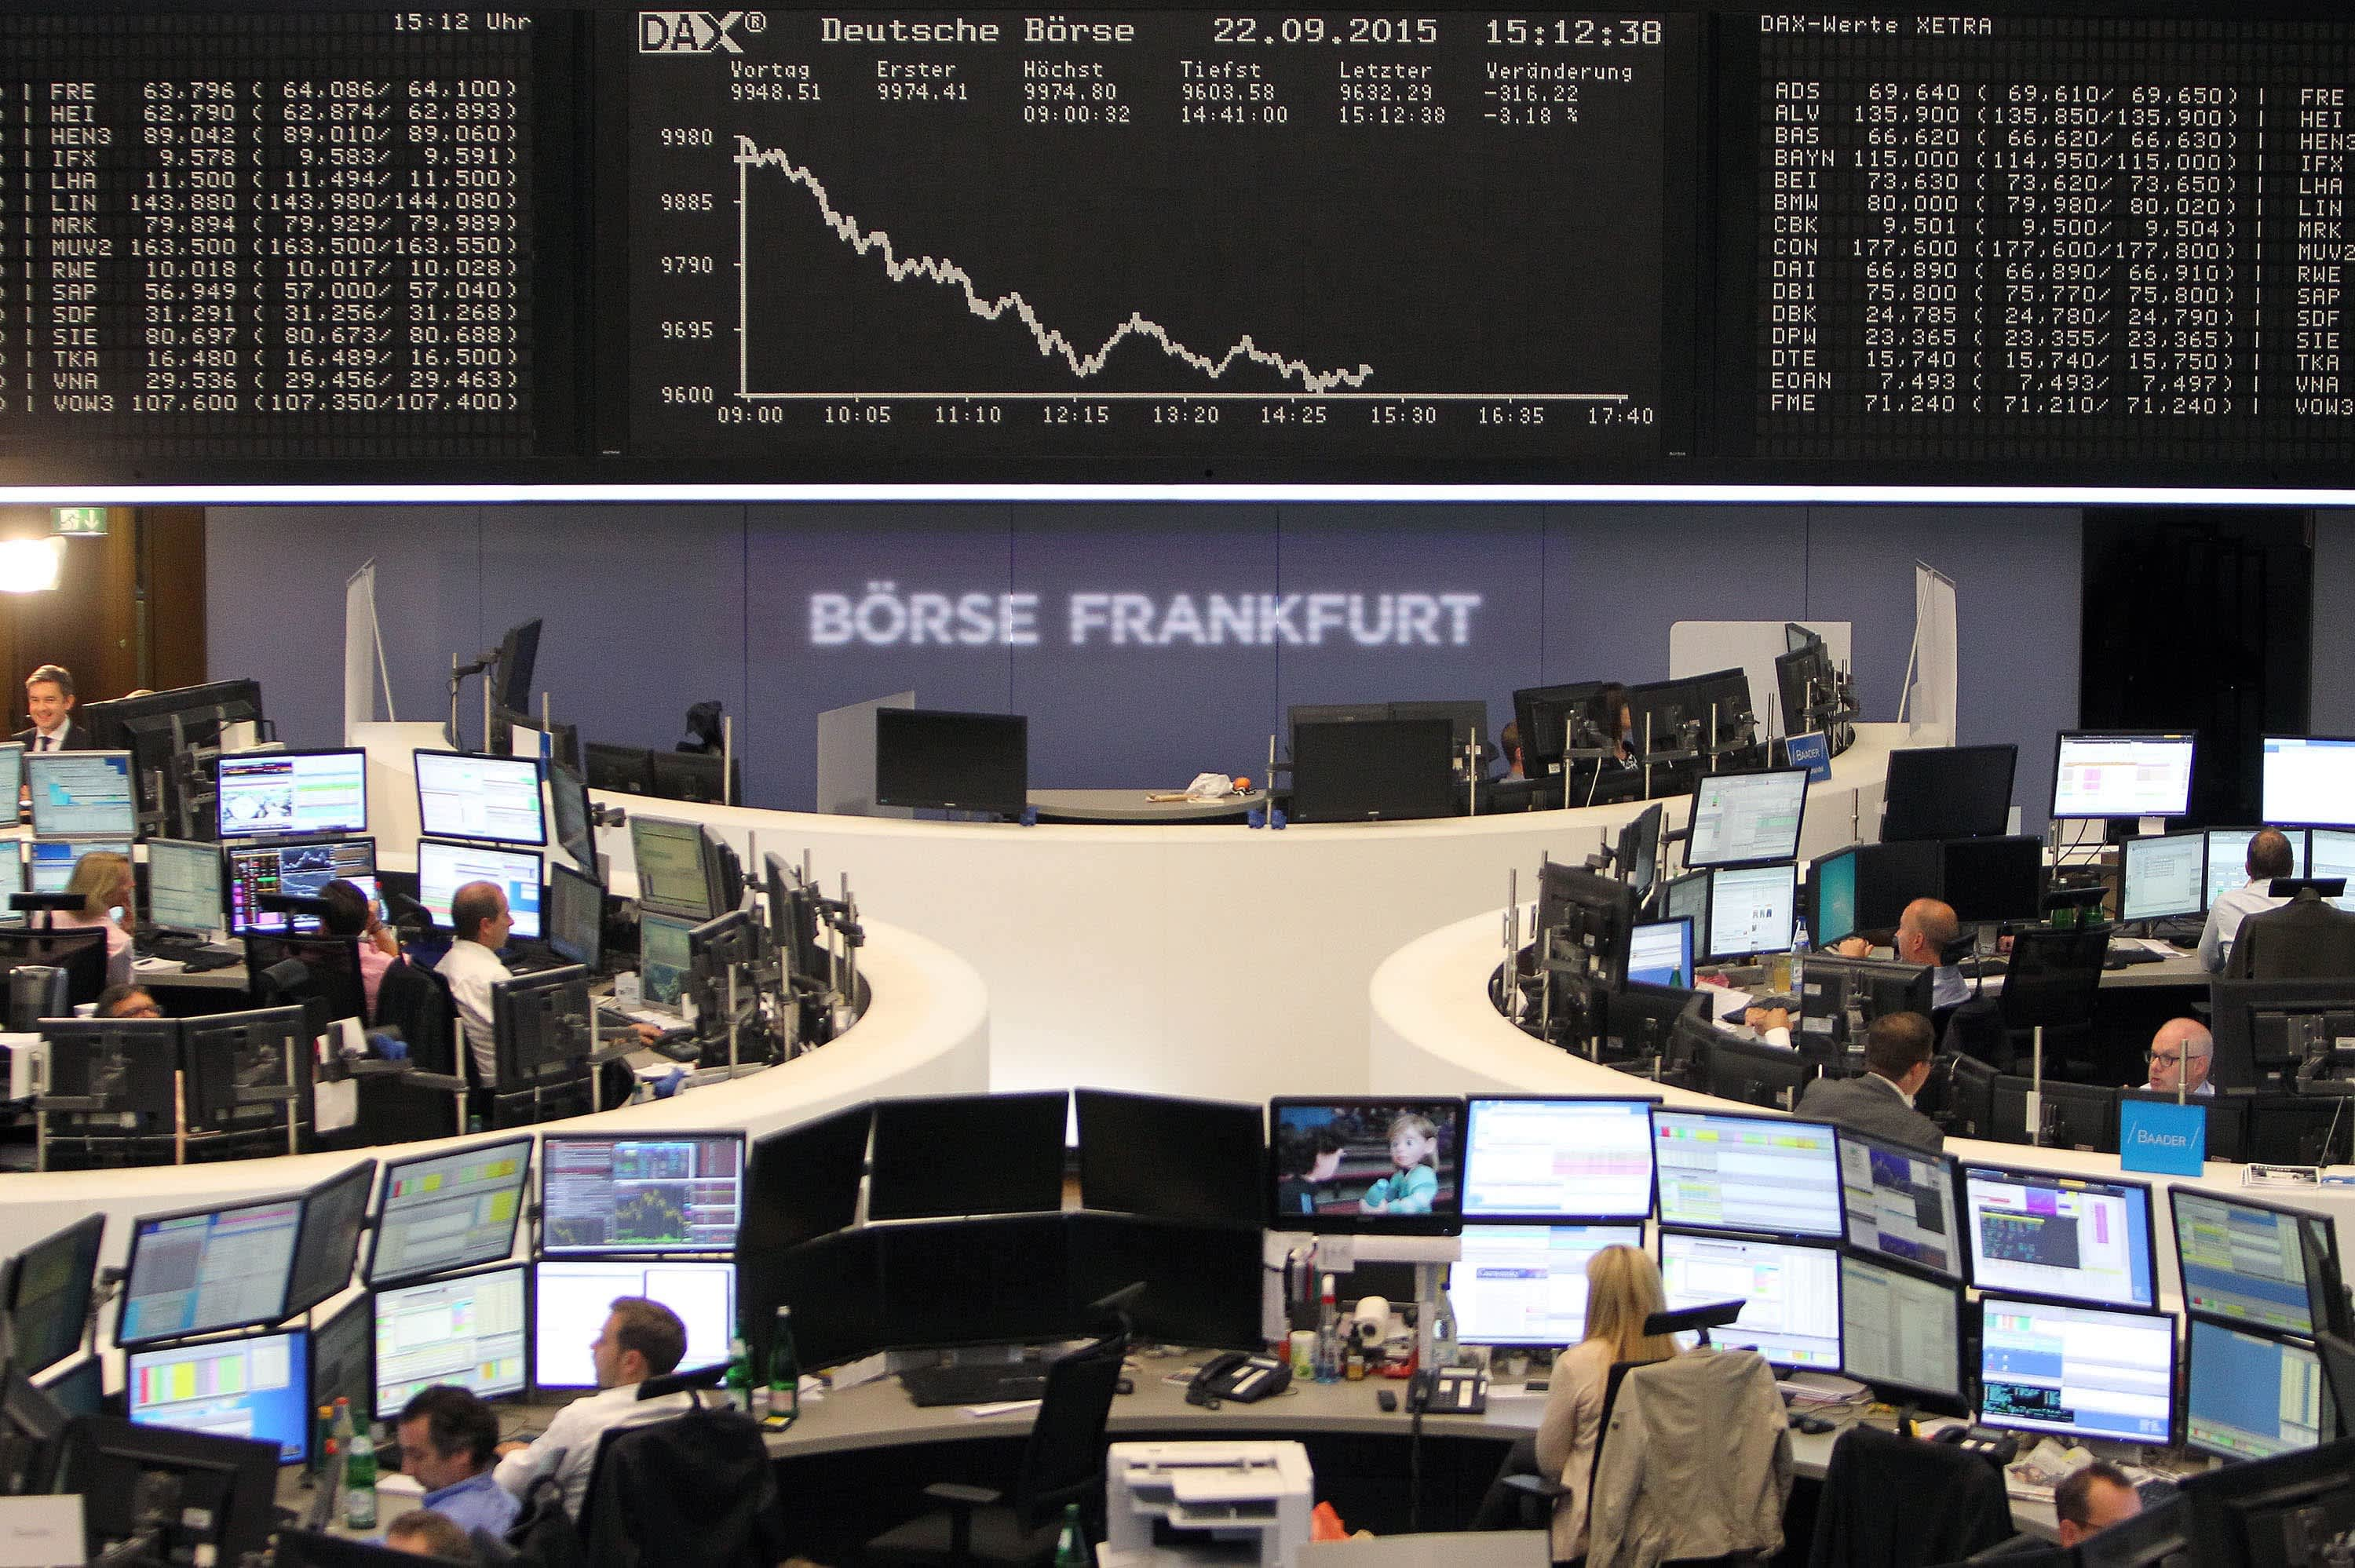 European stocks slightly higher on hopes of a Fed rate cut; Publicis down 8.5%